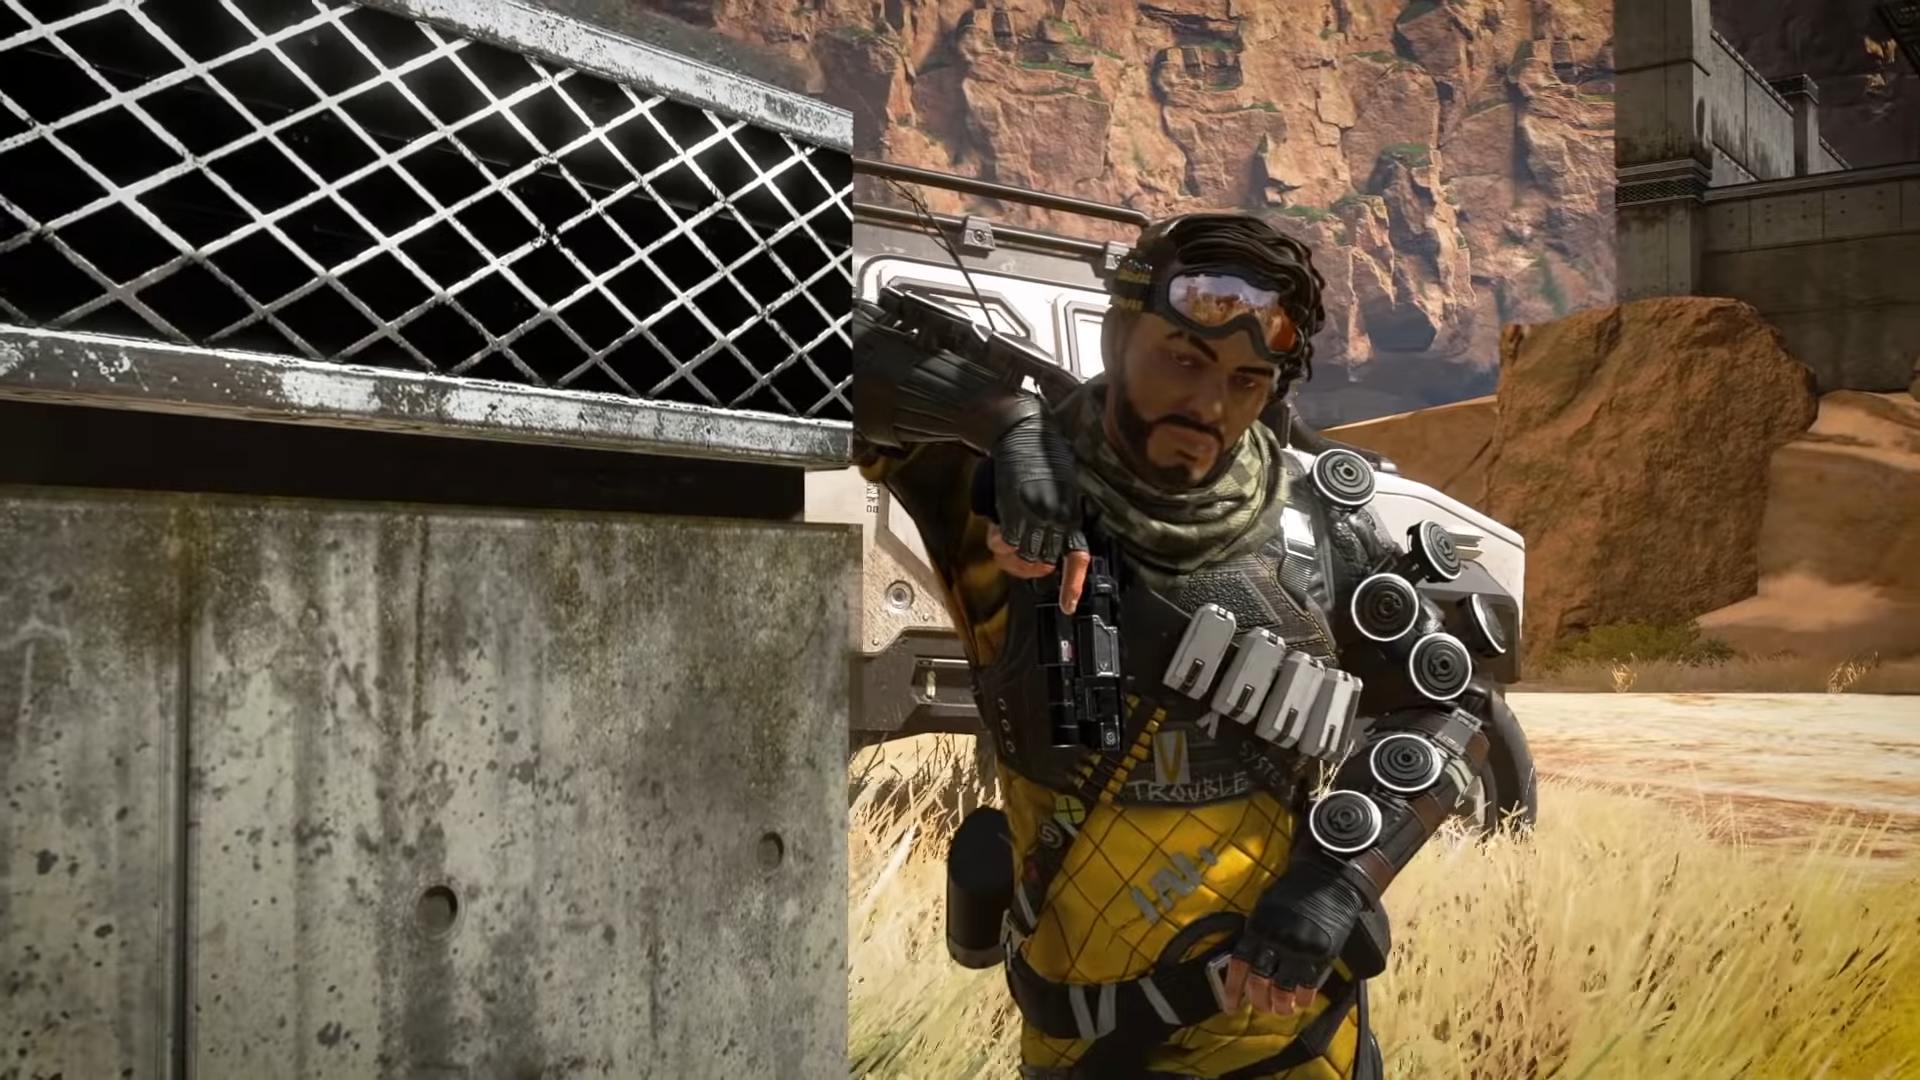 Apex Legends season 5 gameplay trailer previews new skins for Mirage,  Bangalore, and Revenant - Dot Esports